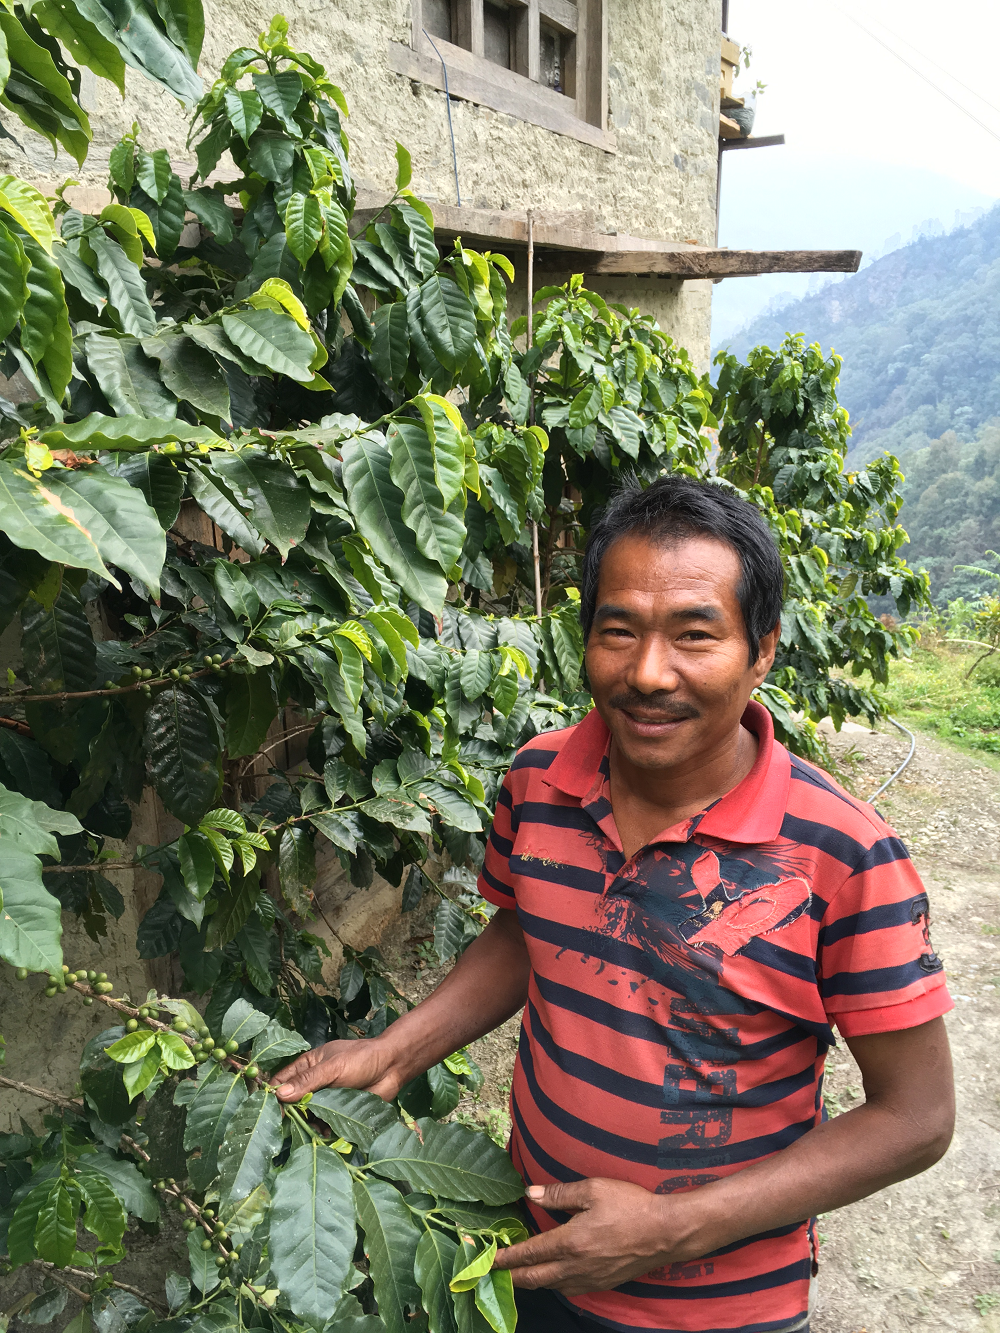 Dilisher Rai with his coffee plant in Deusa, Solukhumbo. (February, 2017)